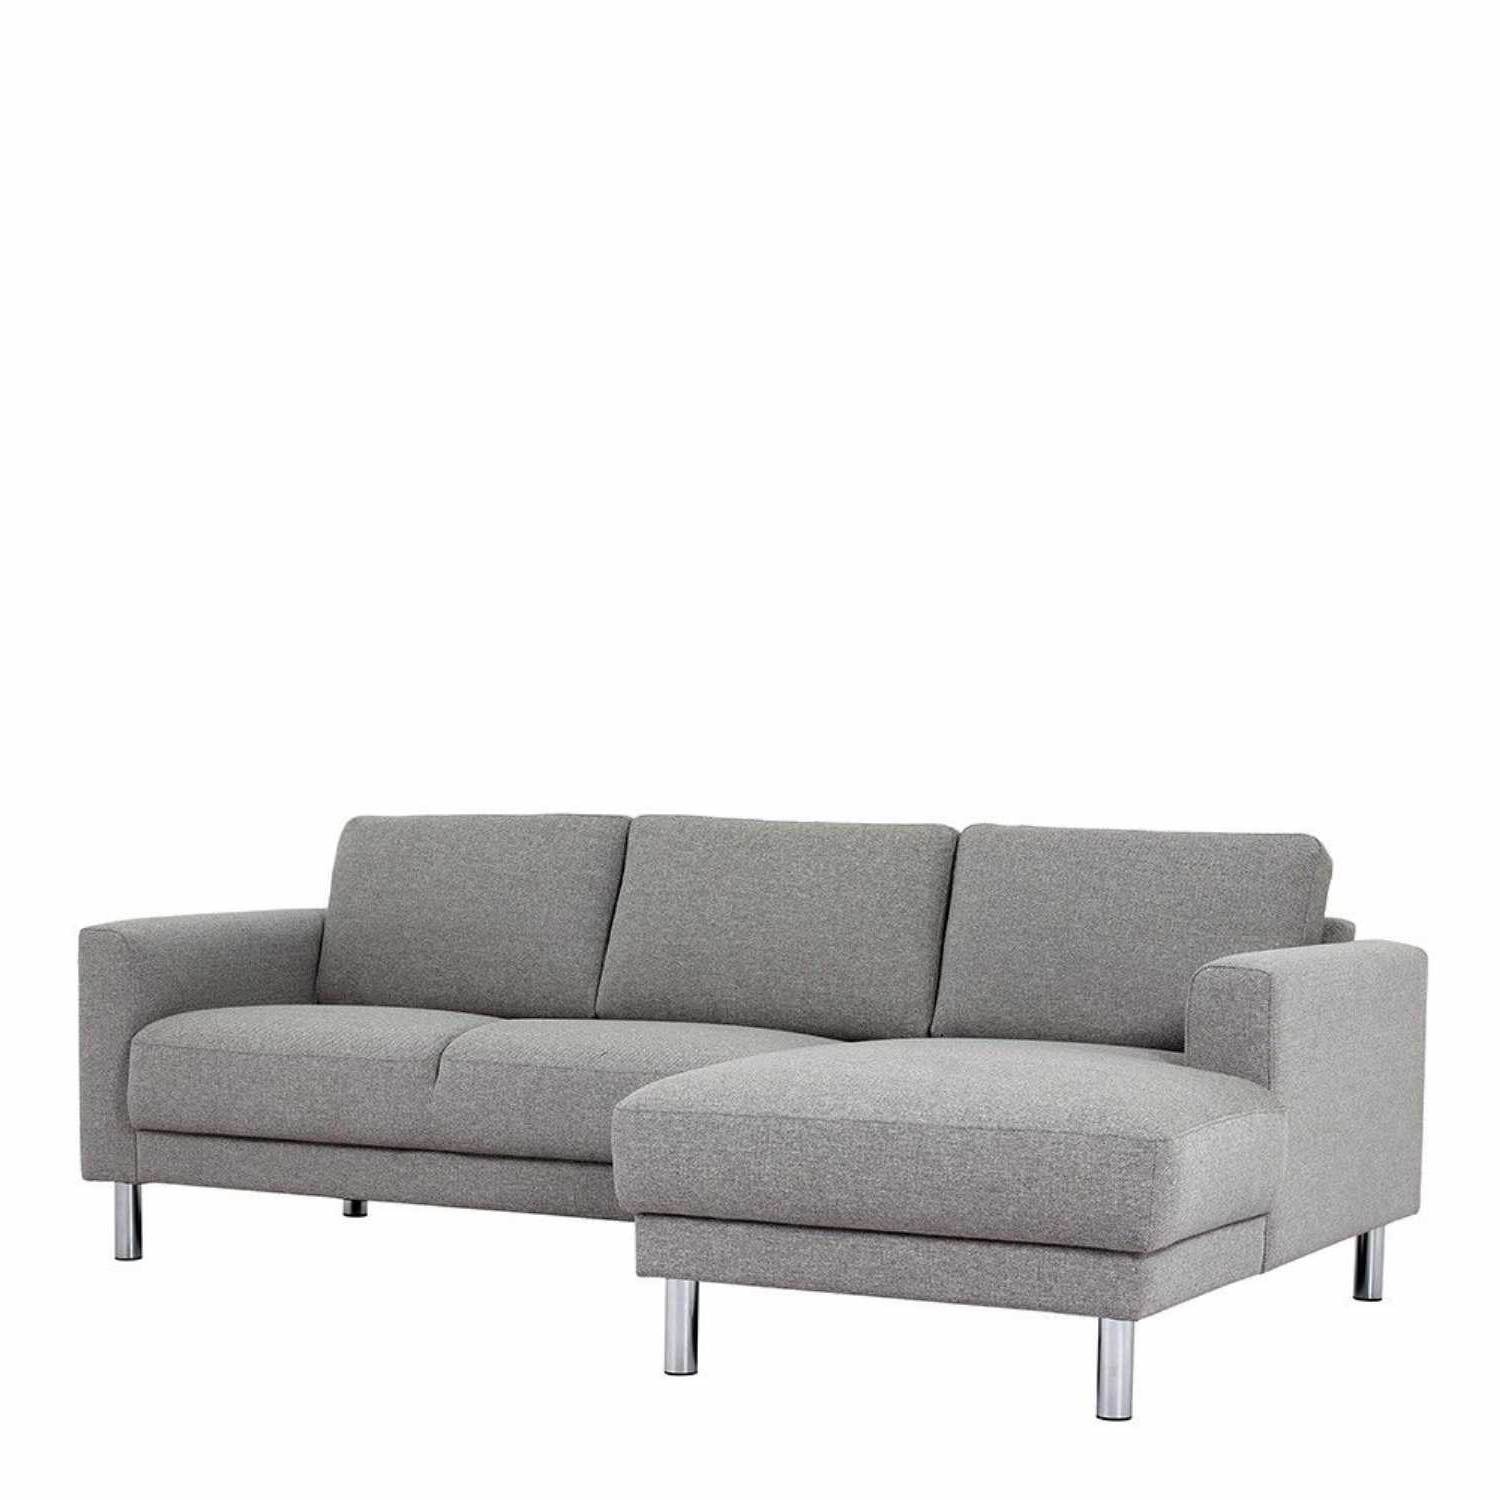 Fashionable Contemporary Nova Light Grey Fabric Left Hand Corner Within 2Pc Crowningshield Contemporary Chaise Sofas Light Gray (View 20 of 25)